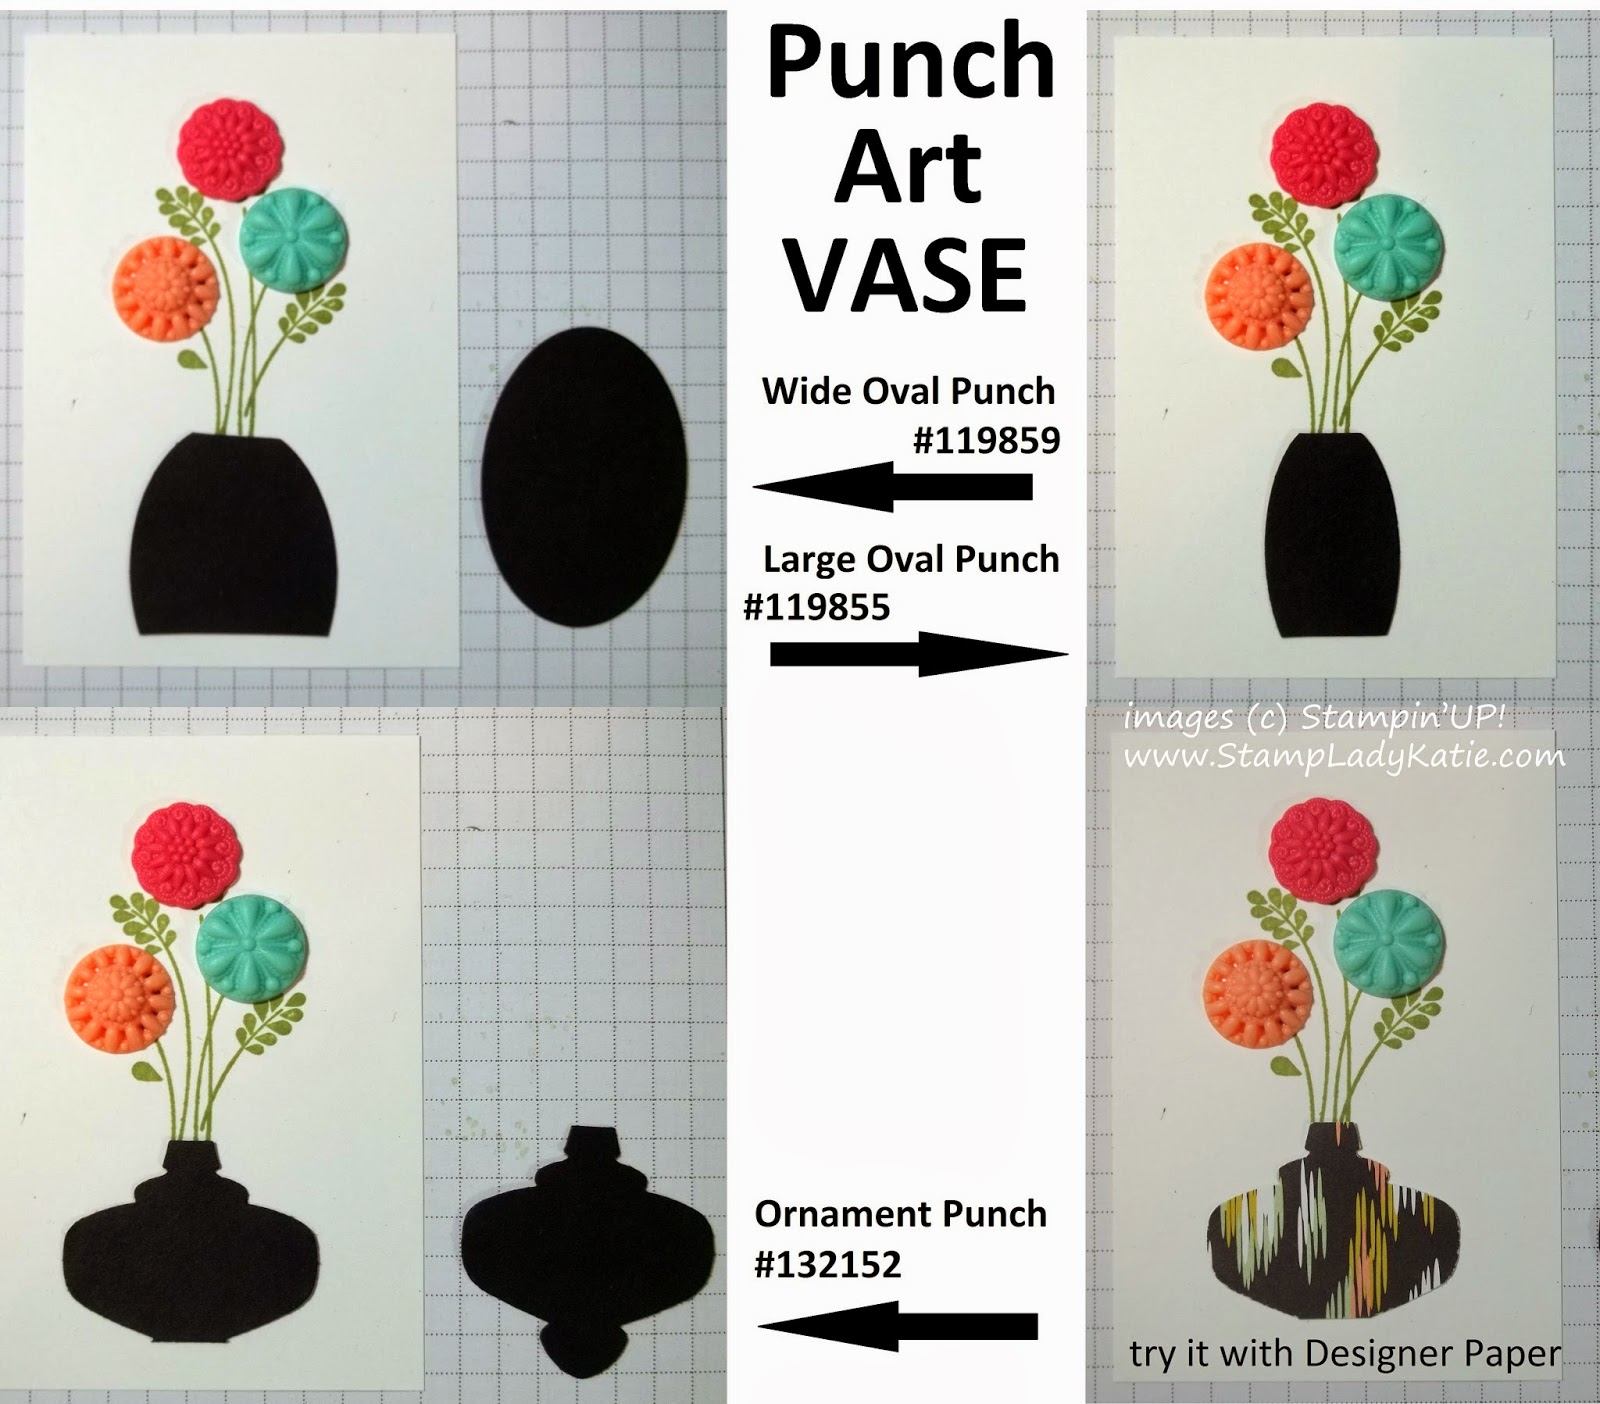 Ideas for a Punch Art Vase